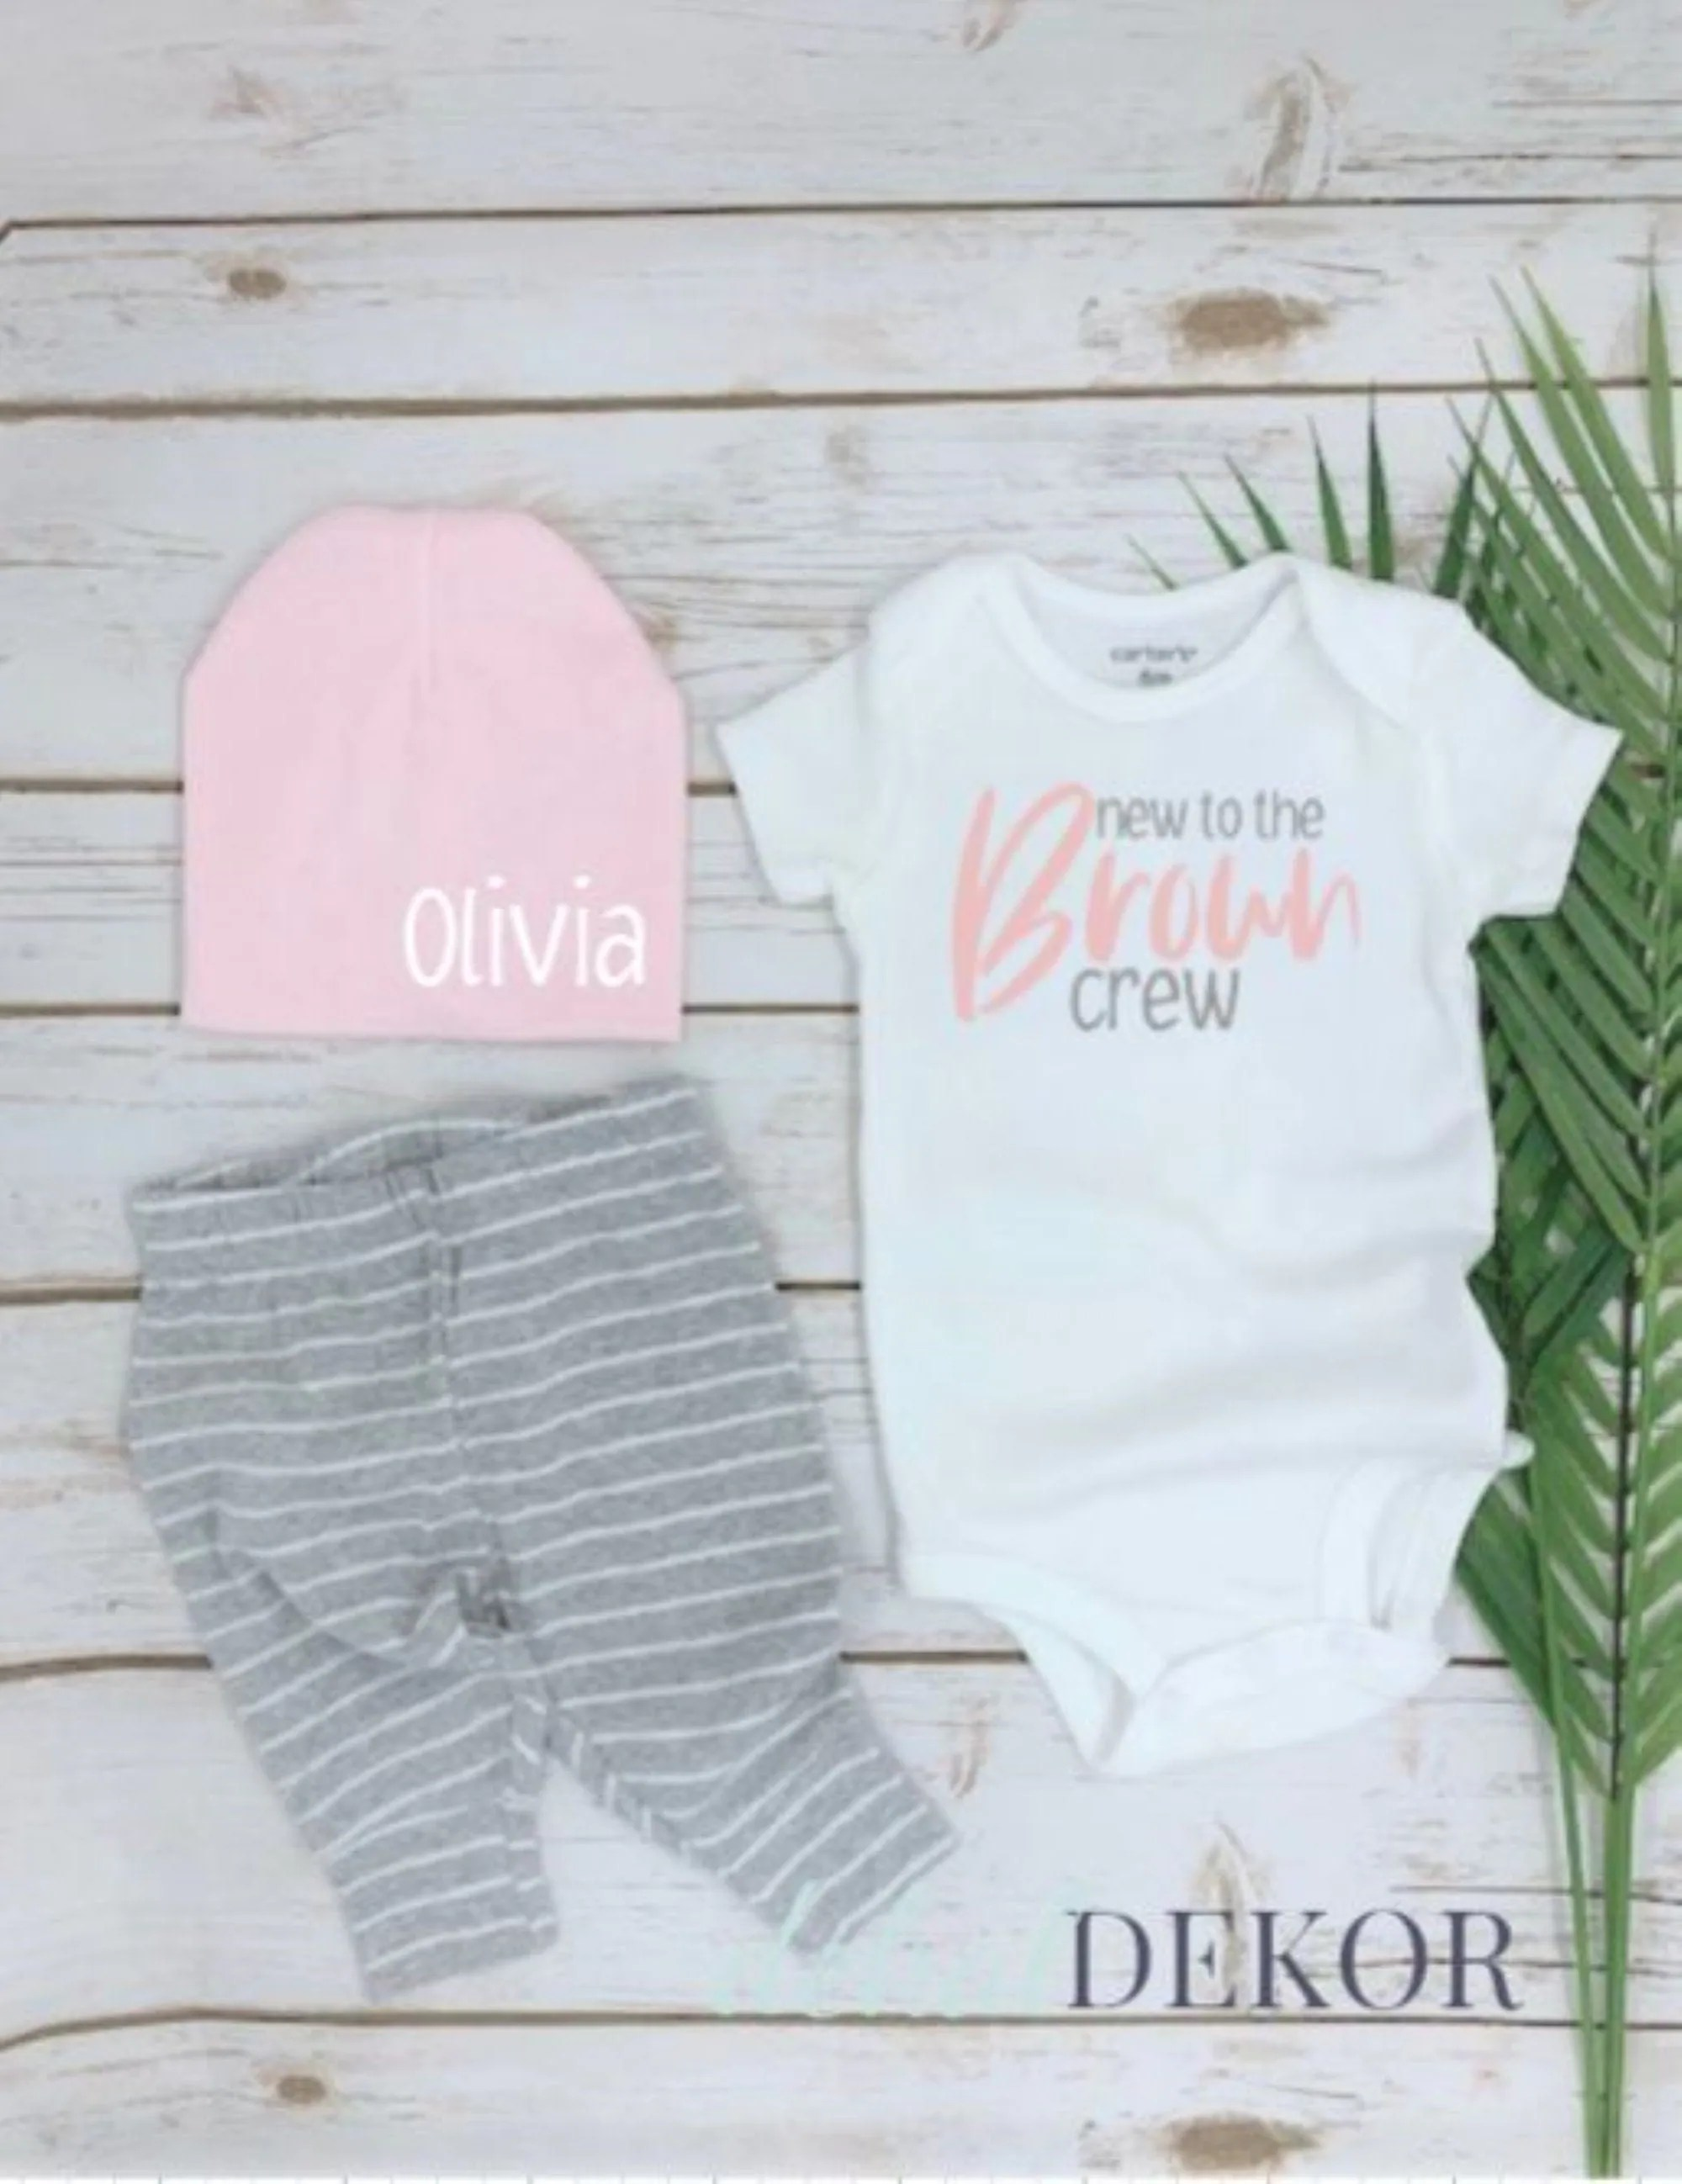 Custom Coming Home Hospital Outfit | New to the Crew | Custom Name/ Last outfit | Baby Shower Gift | Baby girl Personalized gift | pink hat                                                                DekalDekor         From shop DekalDekor                               5 out of 5 stars                                                                                                                                                                                                                                                          (44)                 44 reviews                                                                                   Sale Price CA$13.46                                                                   CA$13.46                                                                             CA$26.92                                                              Original Price CA$26.92                                                                                               (50% off)                                                                                                                                FREE delivery